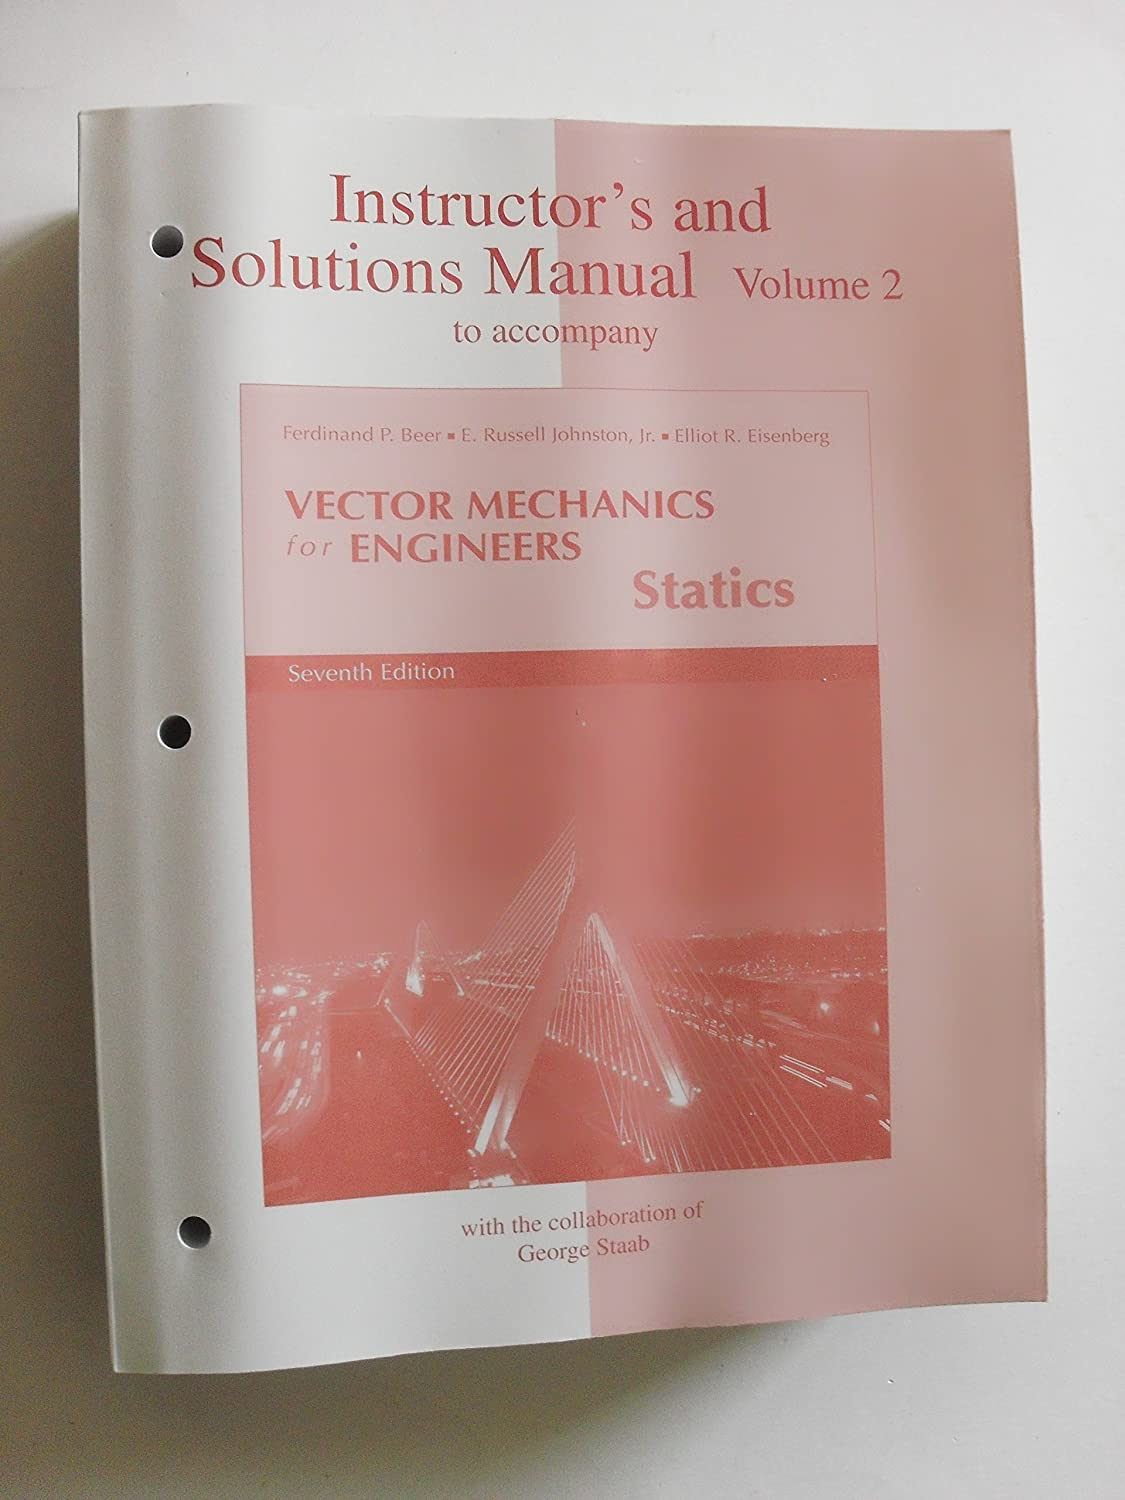 Amazon.com : Instructor's and Solutions Manual to Accompany Vector Mechanics  for Engineers Statics 7th edition Vol.2( paperback) : Everything Else